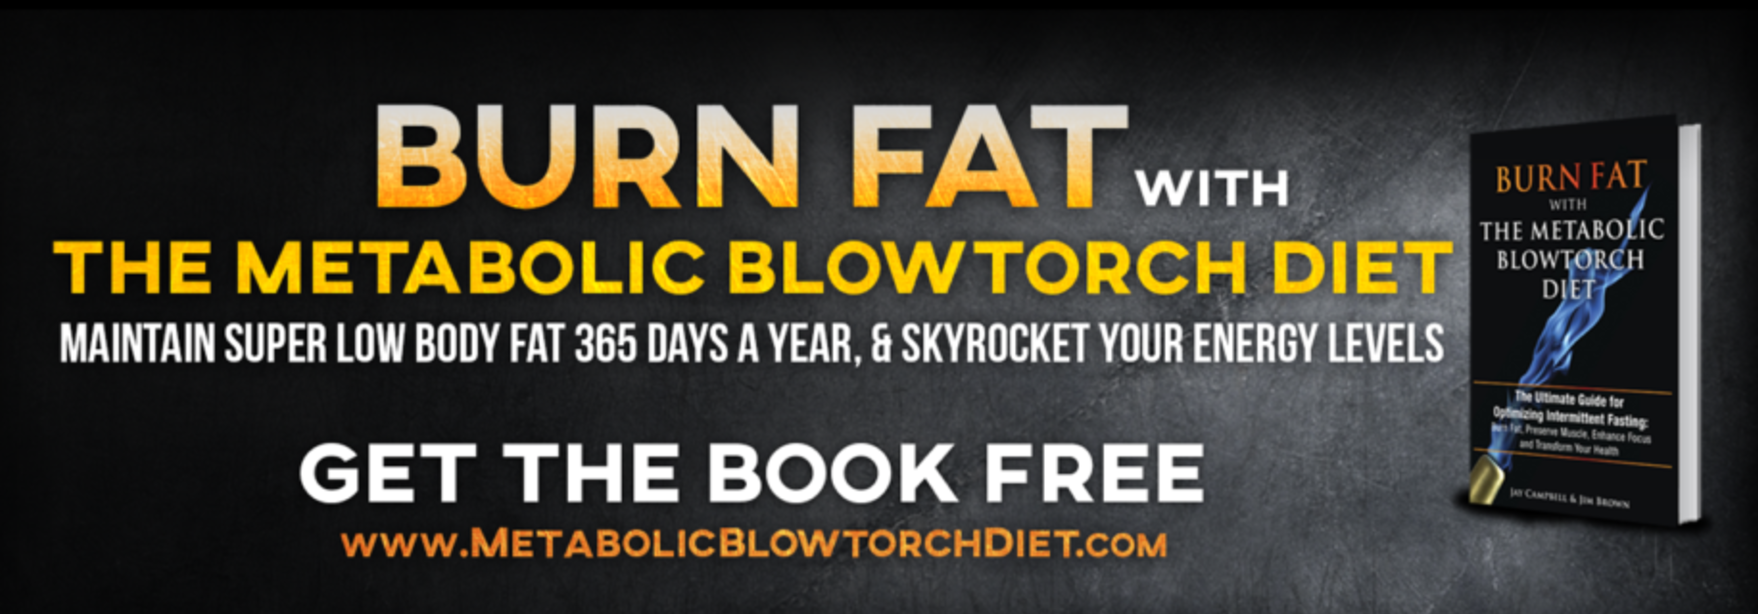 Metabolic-Blowtorch-Diet-FREE-Book